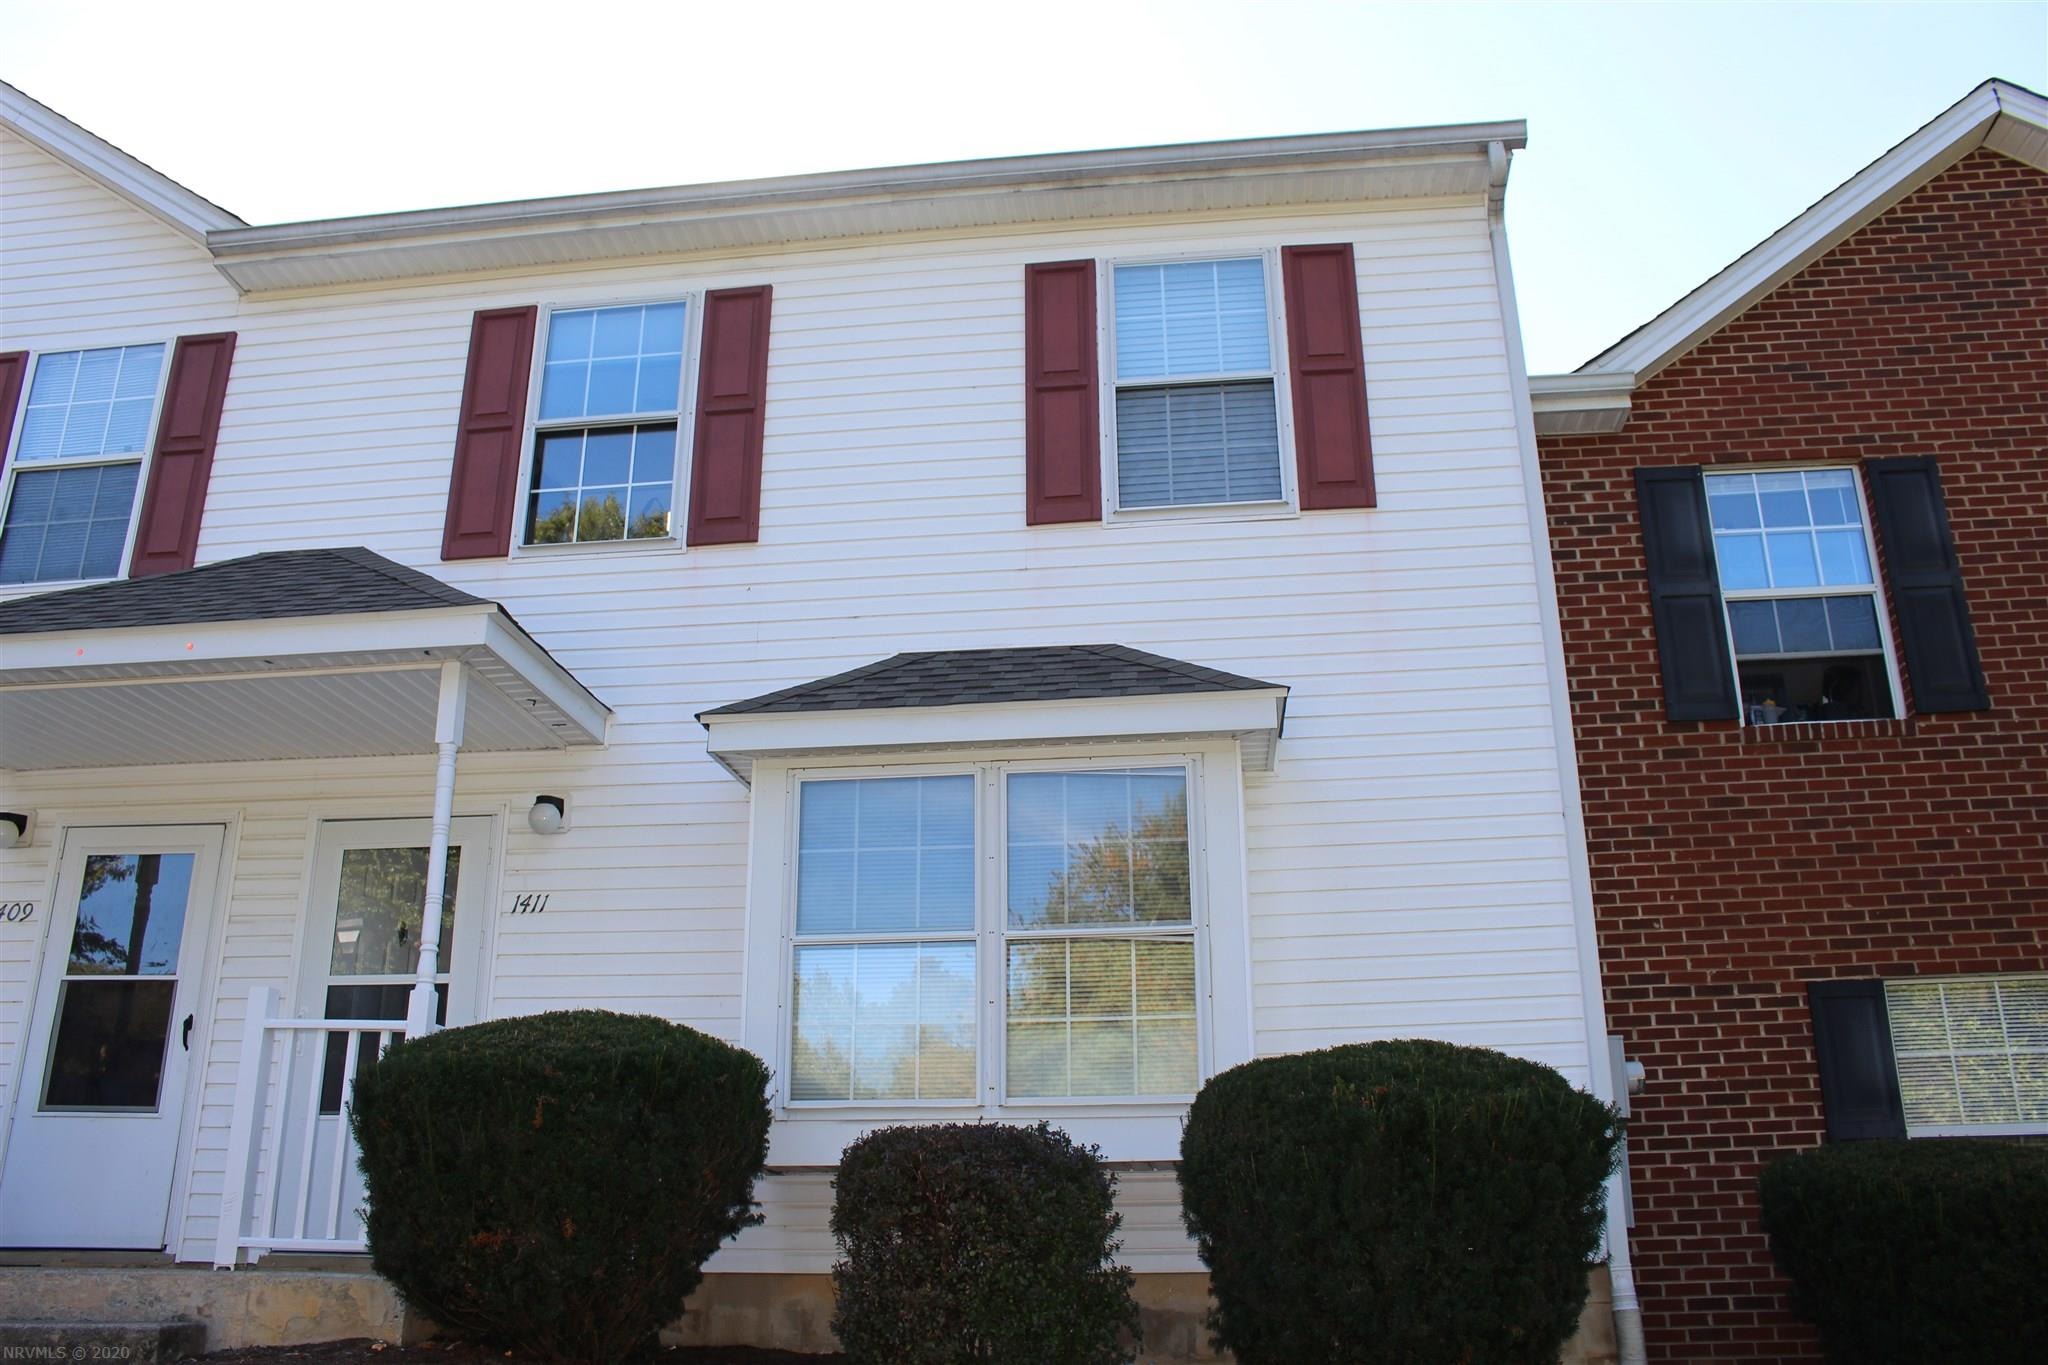 Four-bedroom townhome in good condition and located near bus line with stops on Patrick Henry just two blocks away, very convenient to Virginia Tech campus, downtown Blacksburg, restaurants, shopping, Starbucks, gym, Carol Lee Doughnuts, Food Lion, Rt. 460.  Pheasant Run Crossing is one of Blacksburg's most desired townhome neighborhoods. Spacious open living/dining room w/passthrough to kitchen. A convenient storage closet is attached at the back.  Leased through July 25, 2021, at $1,800 per month. Tenants said they would like to extend their lease for an additional year. $1,800 Deposit.